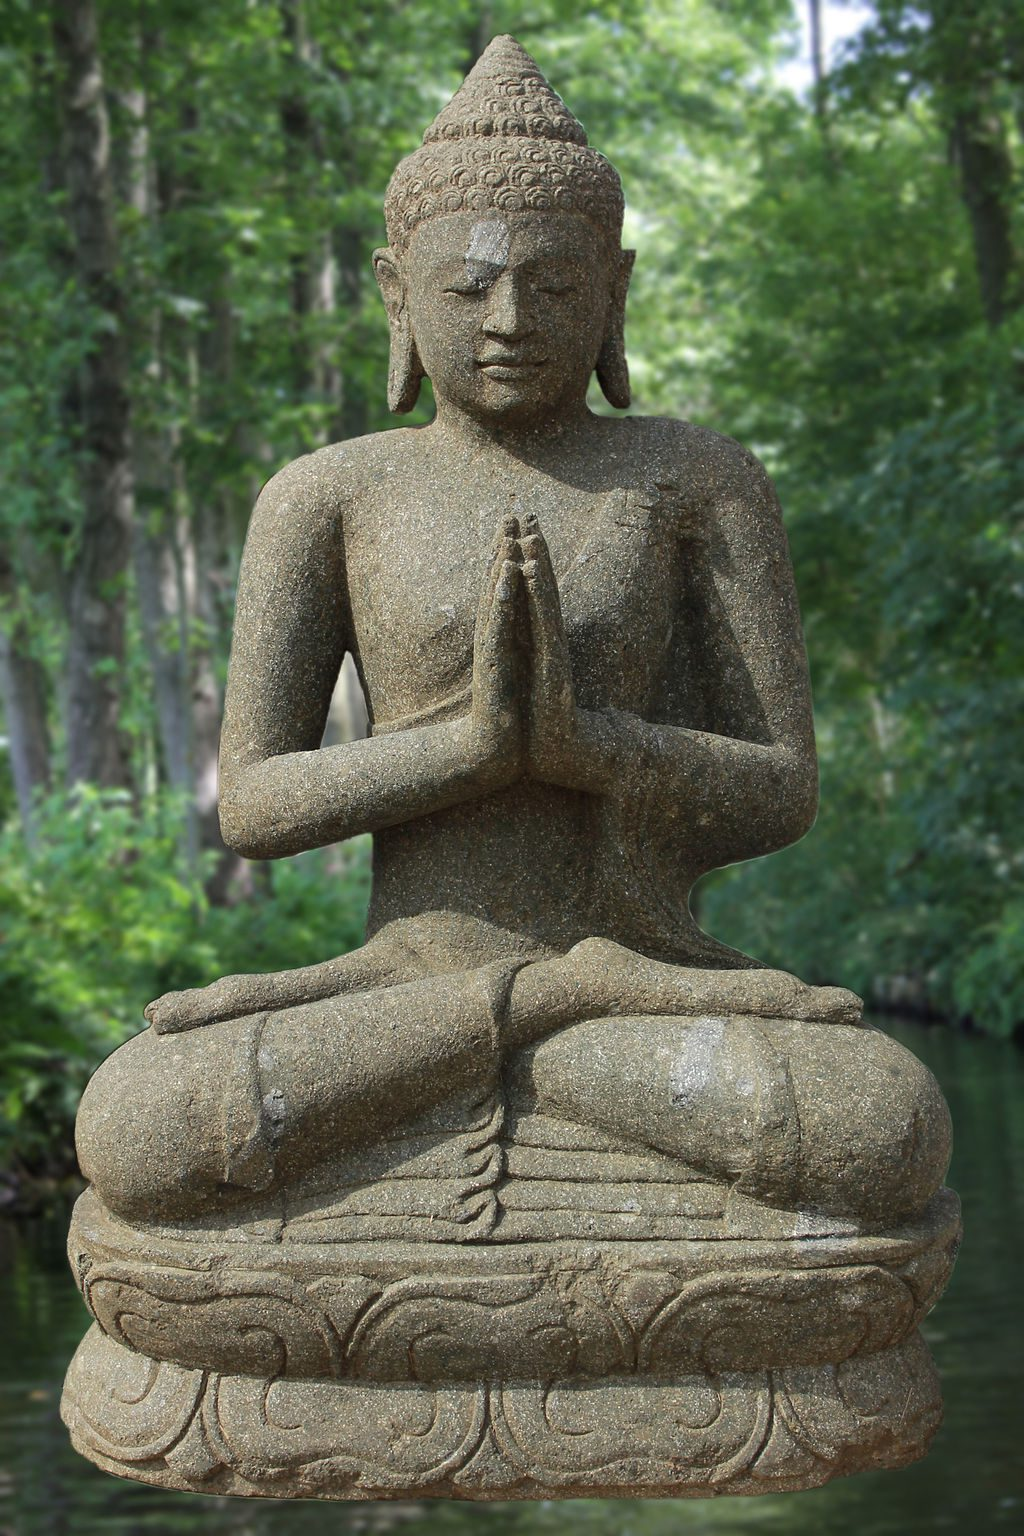 stone statue of a Buddha with hands in prayer or anjali mudra position